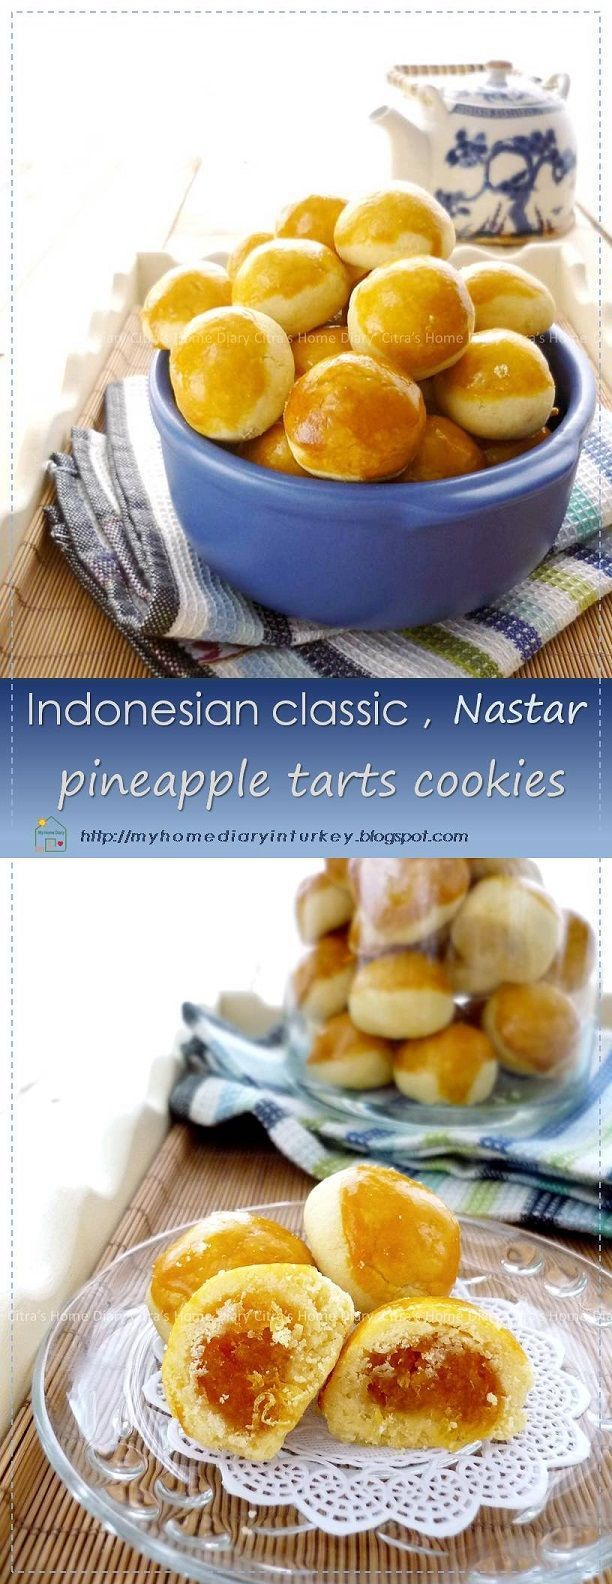 Pineapple tarts cookies is one of Indonesian traditional (and some neighbouring countries) cookies that commonly made and serve during religious holiday such as Eid-el Fitr or christmas along with many other traditional cookies. #koekjes #cookies #nastar #indonesiancookies #pineapple #eidulfitr #christmascookies #kuekeringlebaran